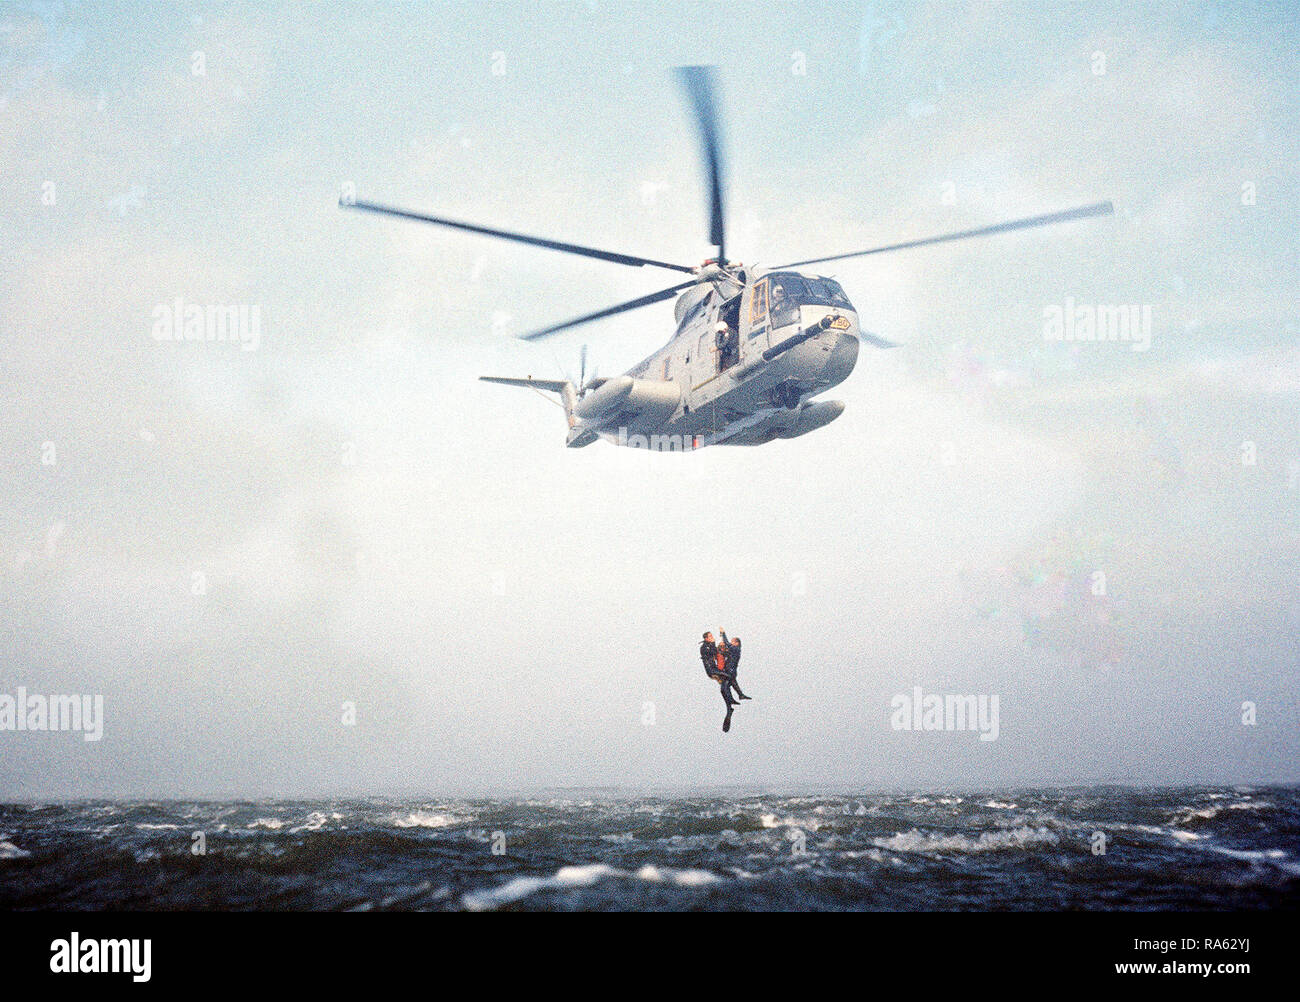 1977 - A sea-to-air view of an HH-3 Jolly Green Giant helicopter using a recovery hoist to lift two pararescuemen from the water off the coast of California.  The men, from the 129th Aerospace Rescue and Recovery Group of the Air National Guard, are participating in a practice rescue mission. - Stock Image